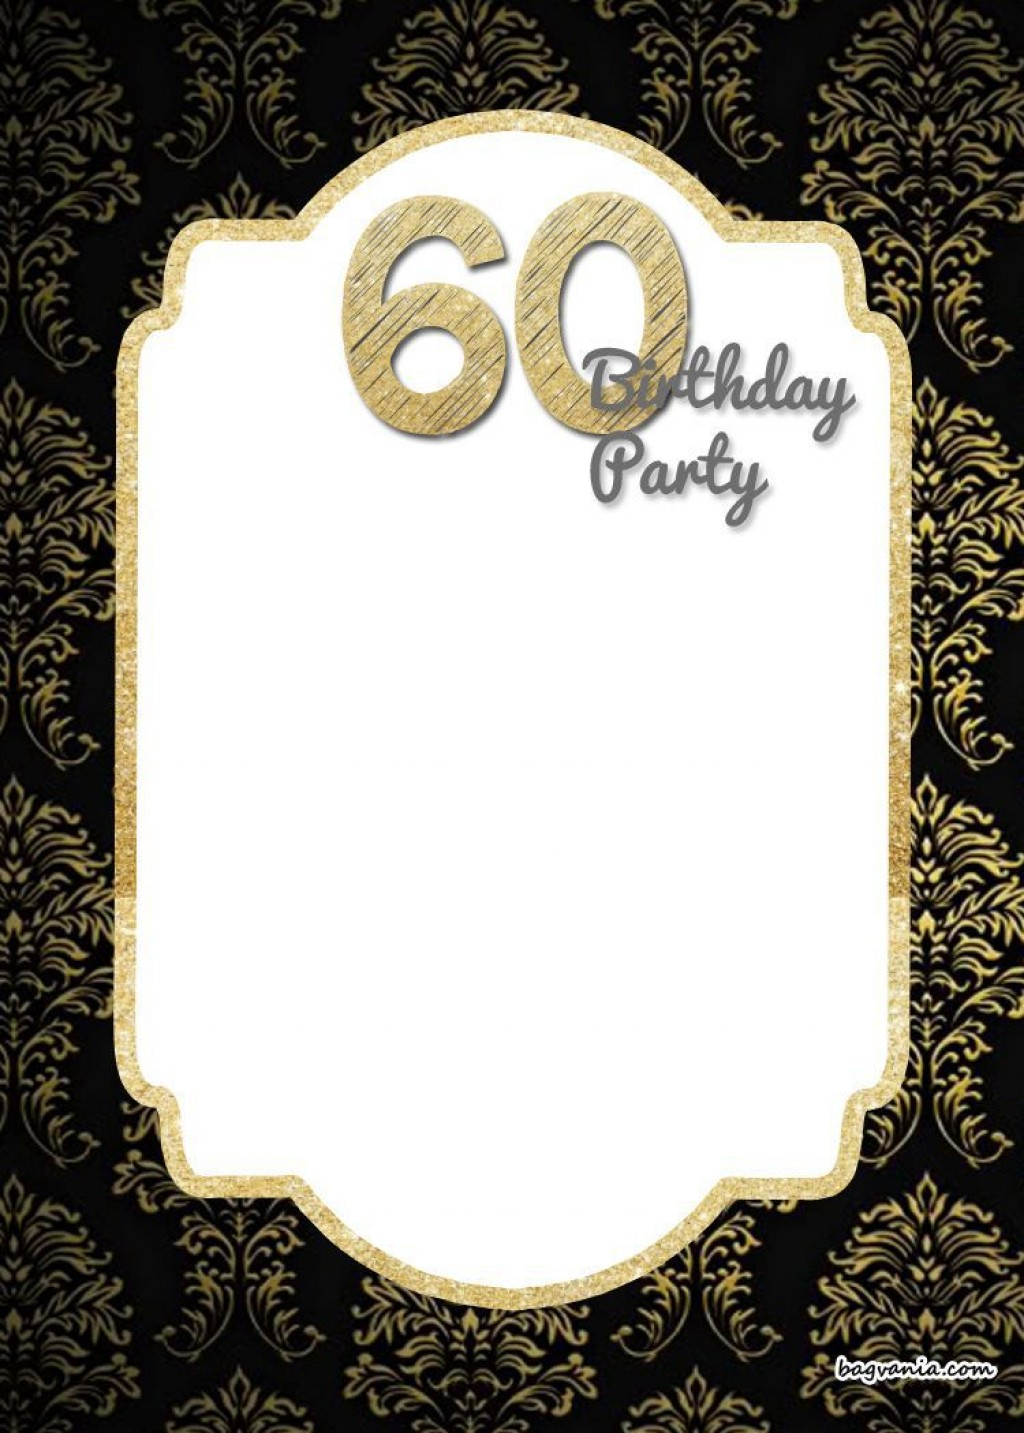 005 Marvelou 70th Birthday Invitation Template Free Picture  Surprise Invite With PhotoLarge